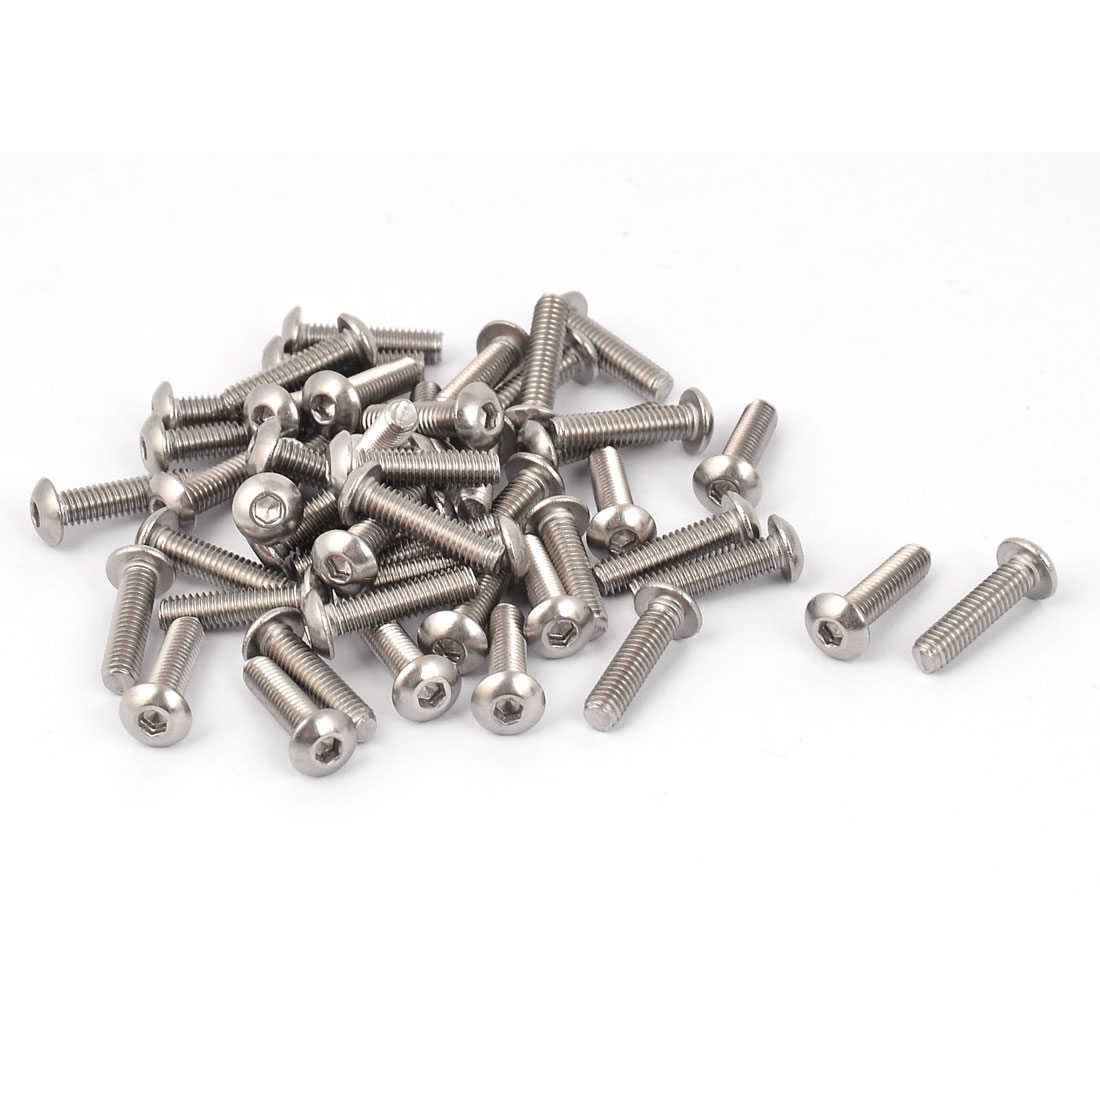 M4 x 16mm Stainless Steel Button Head Socket Cap Screw Silver Tone 50 Pcs